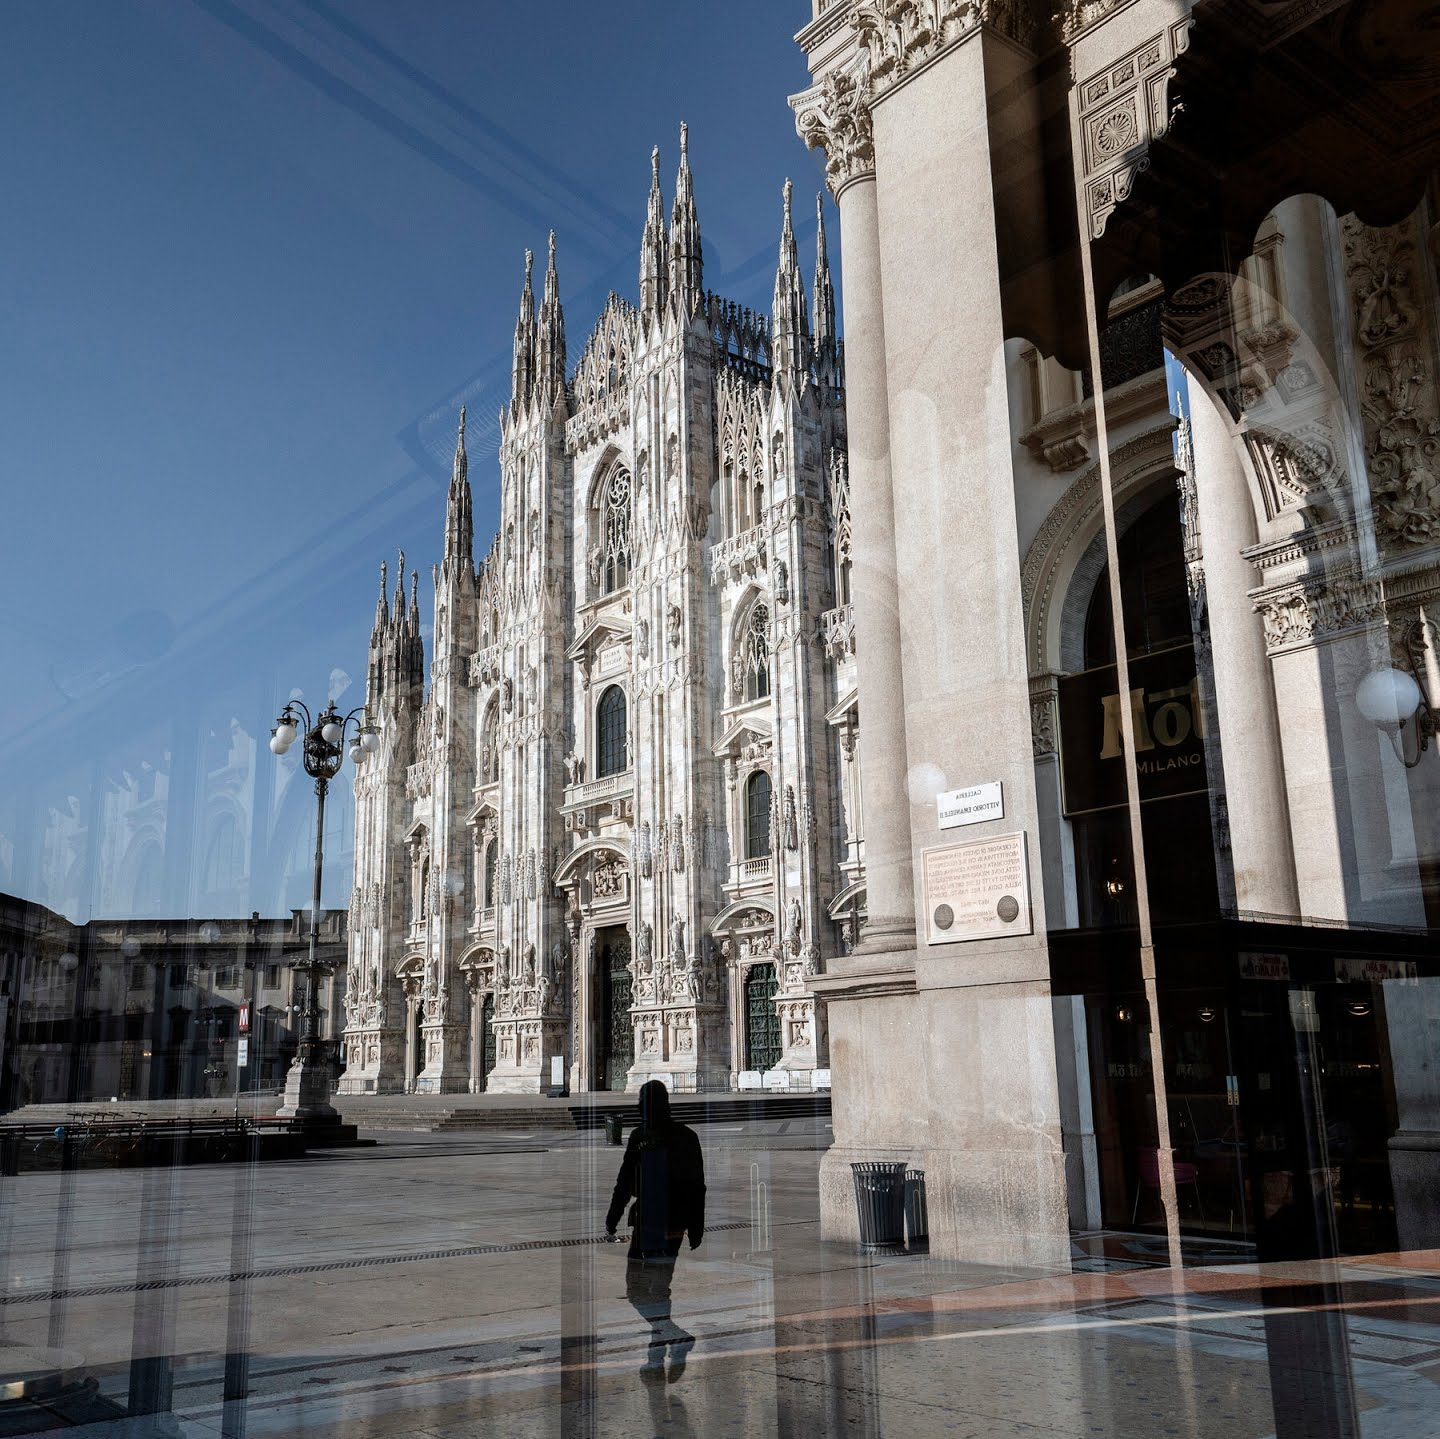 The Piazza Duomo in Milan during Italy's lockdown in early April.